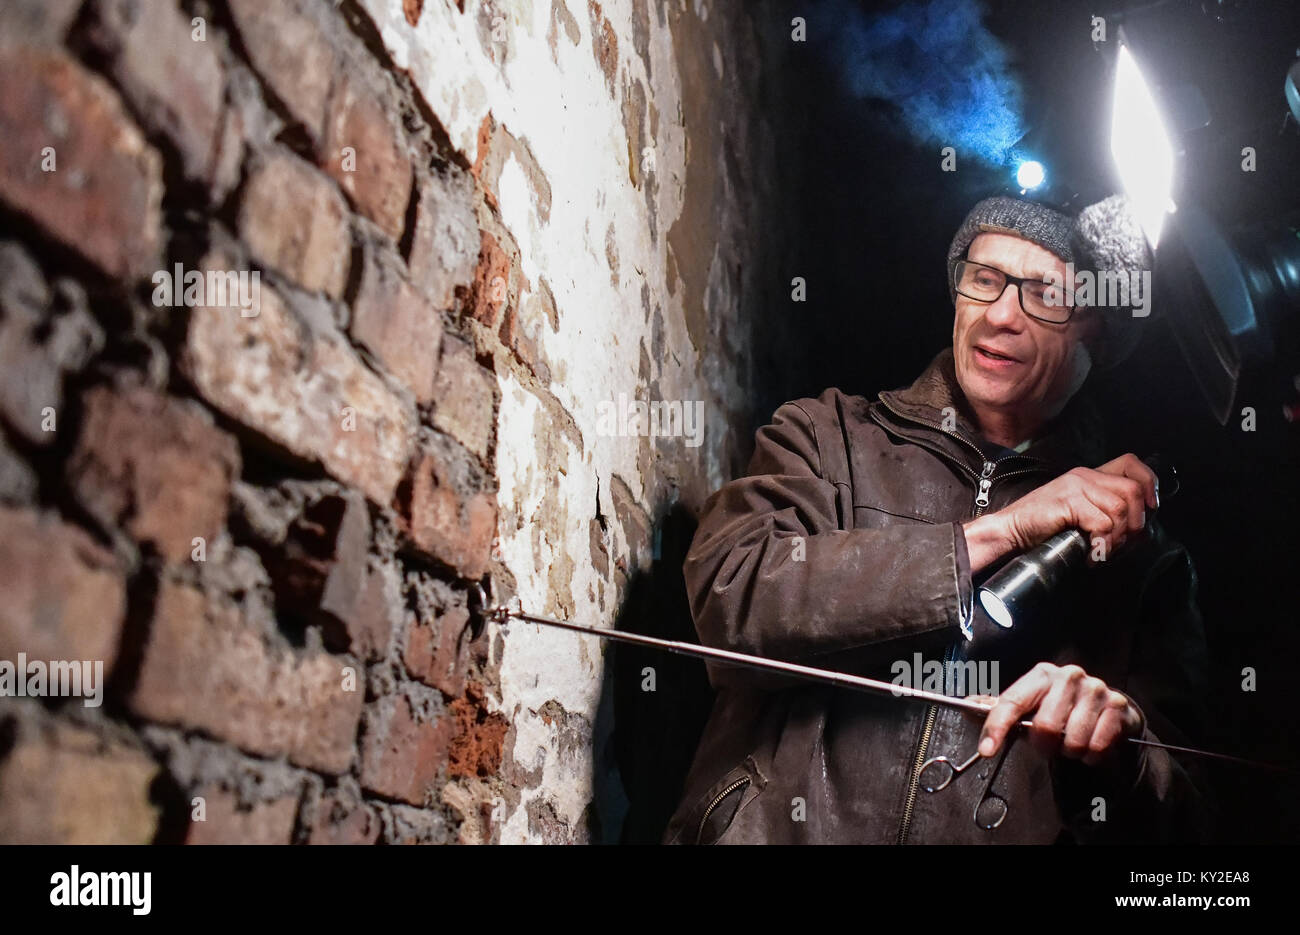 Oder, Germany. 12th Jan, 2018. NABU-conservationist Lutz Ittermann uses a torch to search for bats in an old brewery - Stock Image